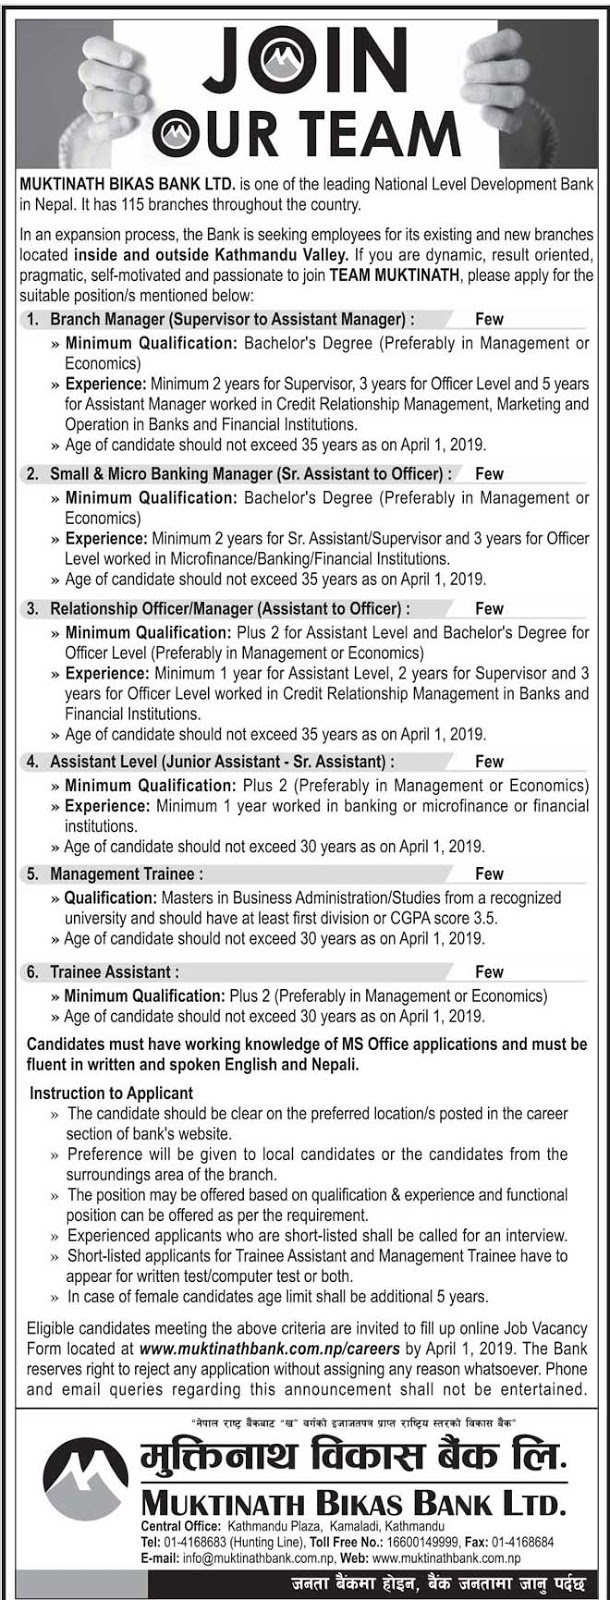 Vacancy notice from Muktinath Bikas Bank Limited (MNBBL)